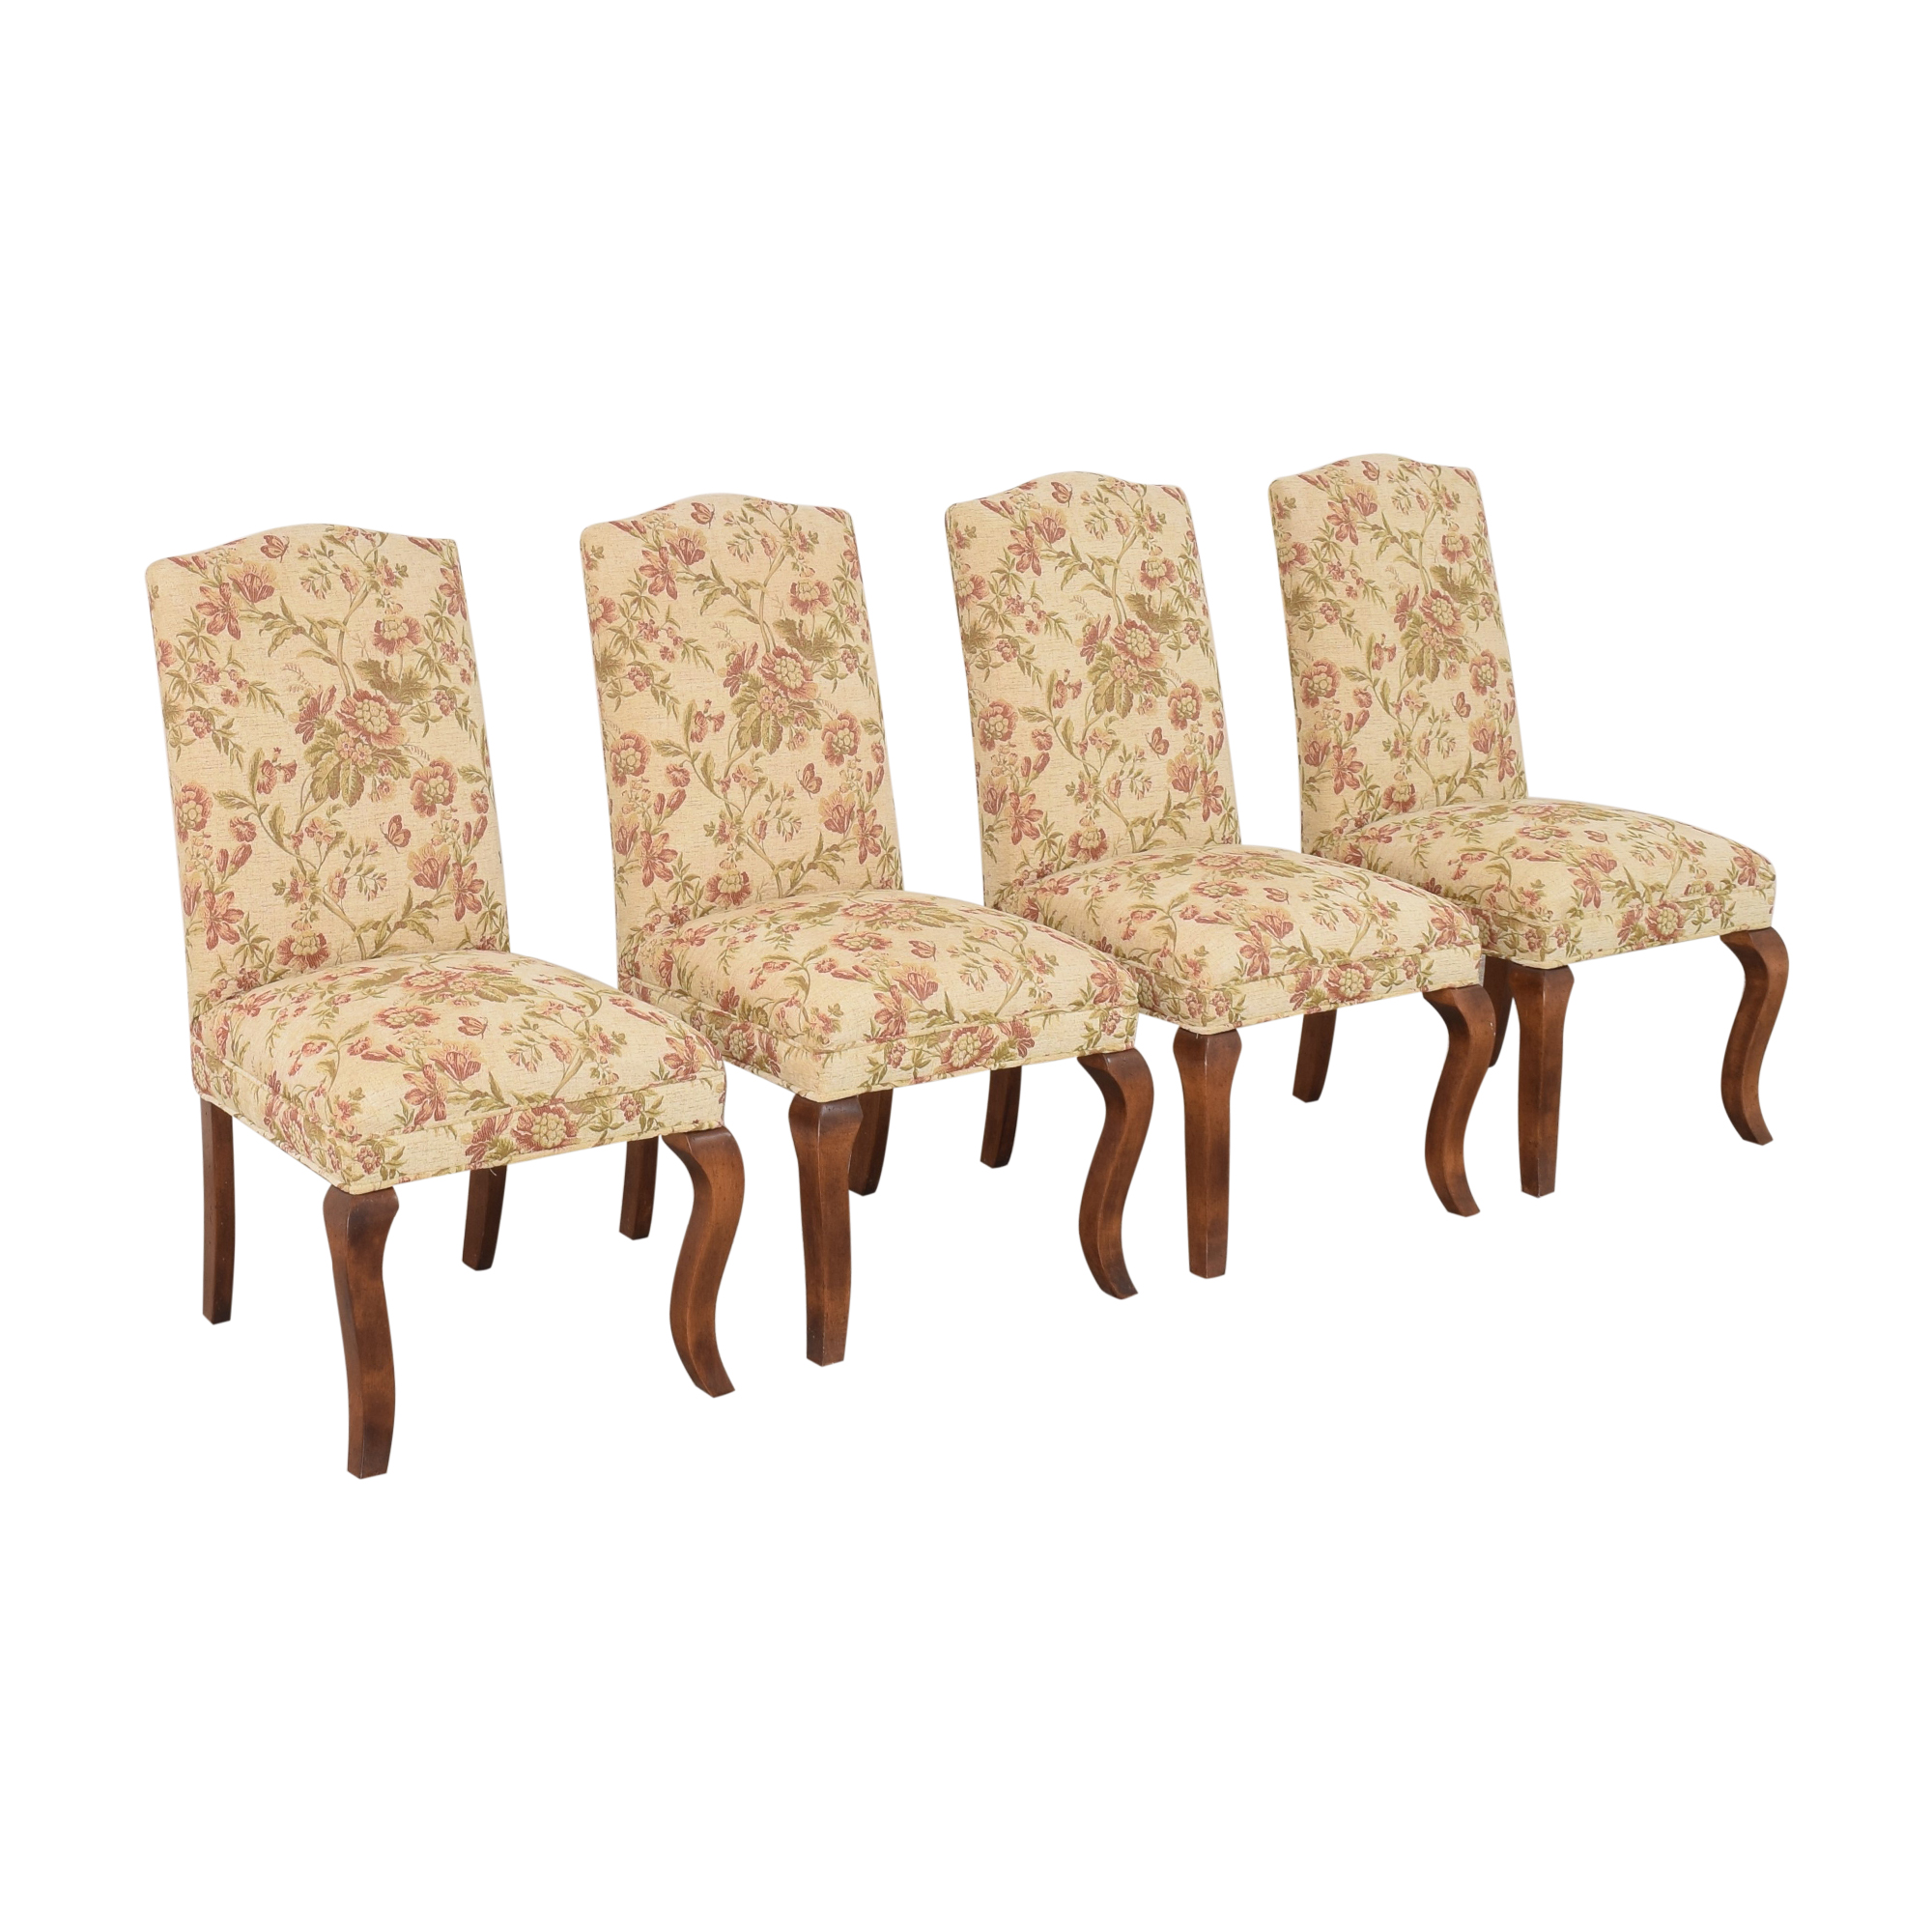 Queen Anne Upholstered Dining Chairs for sale